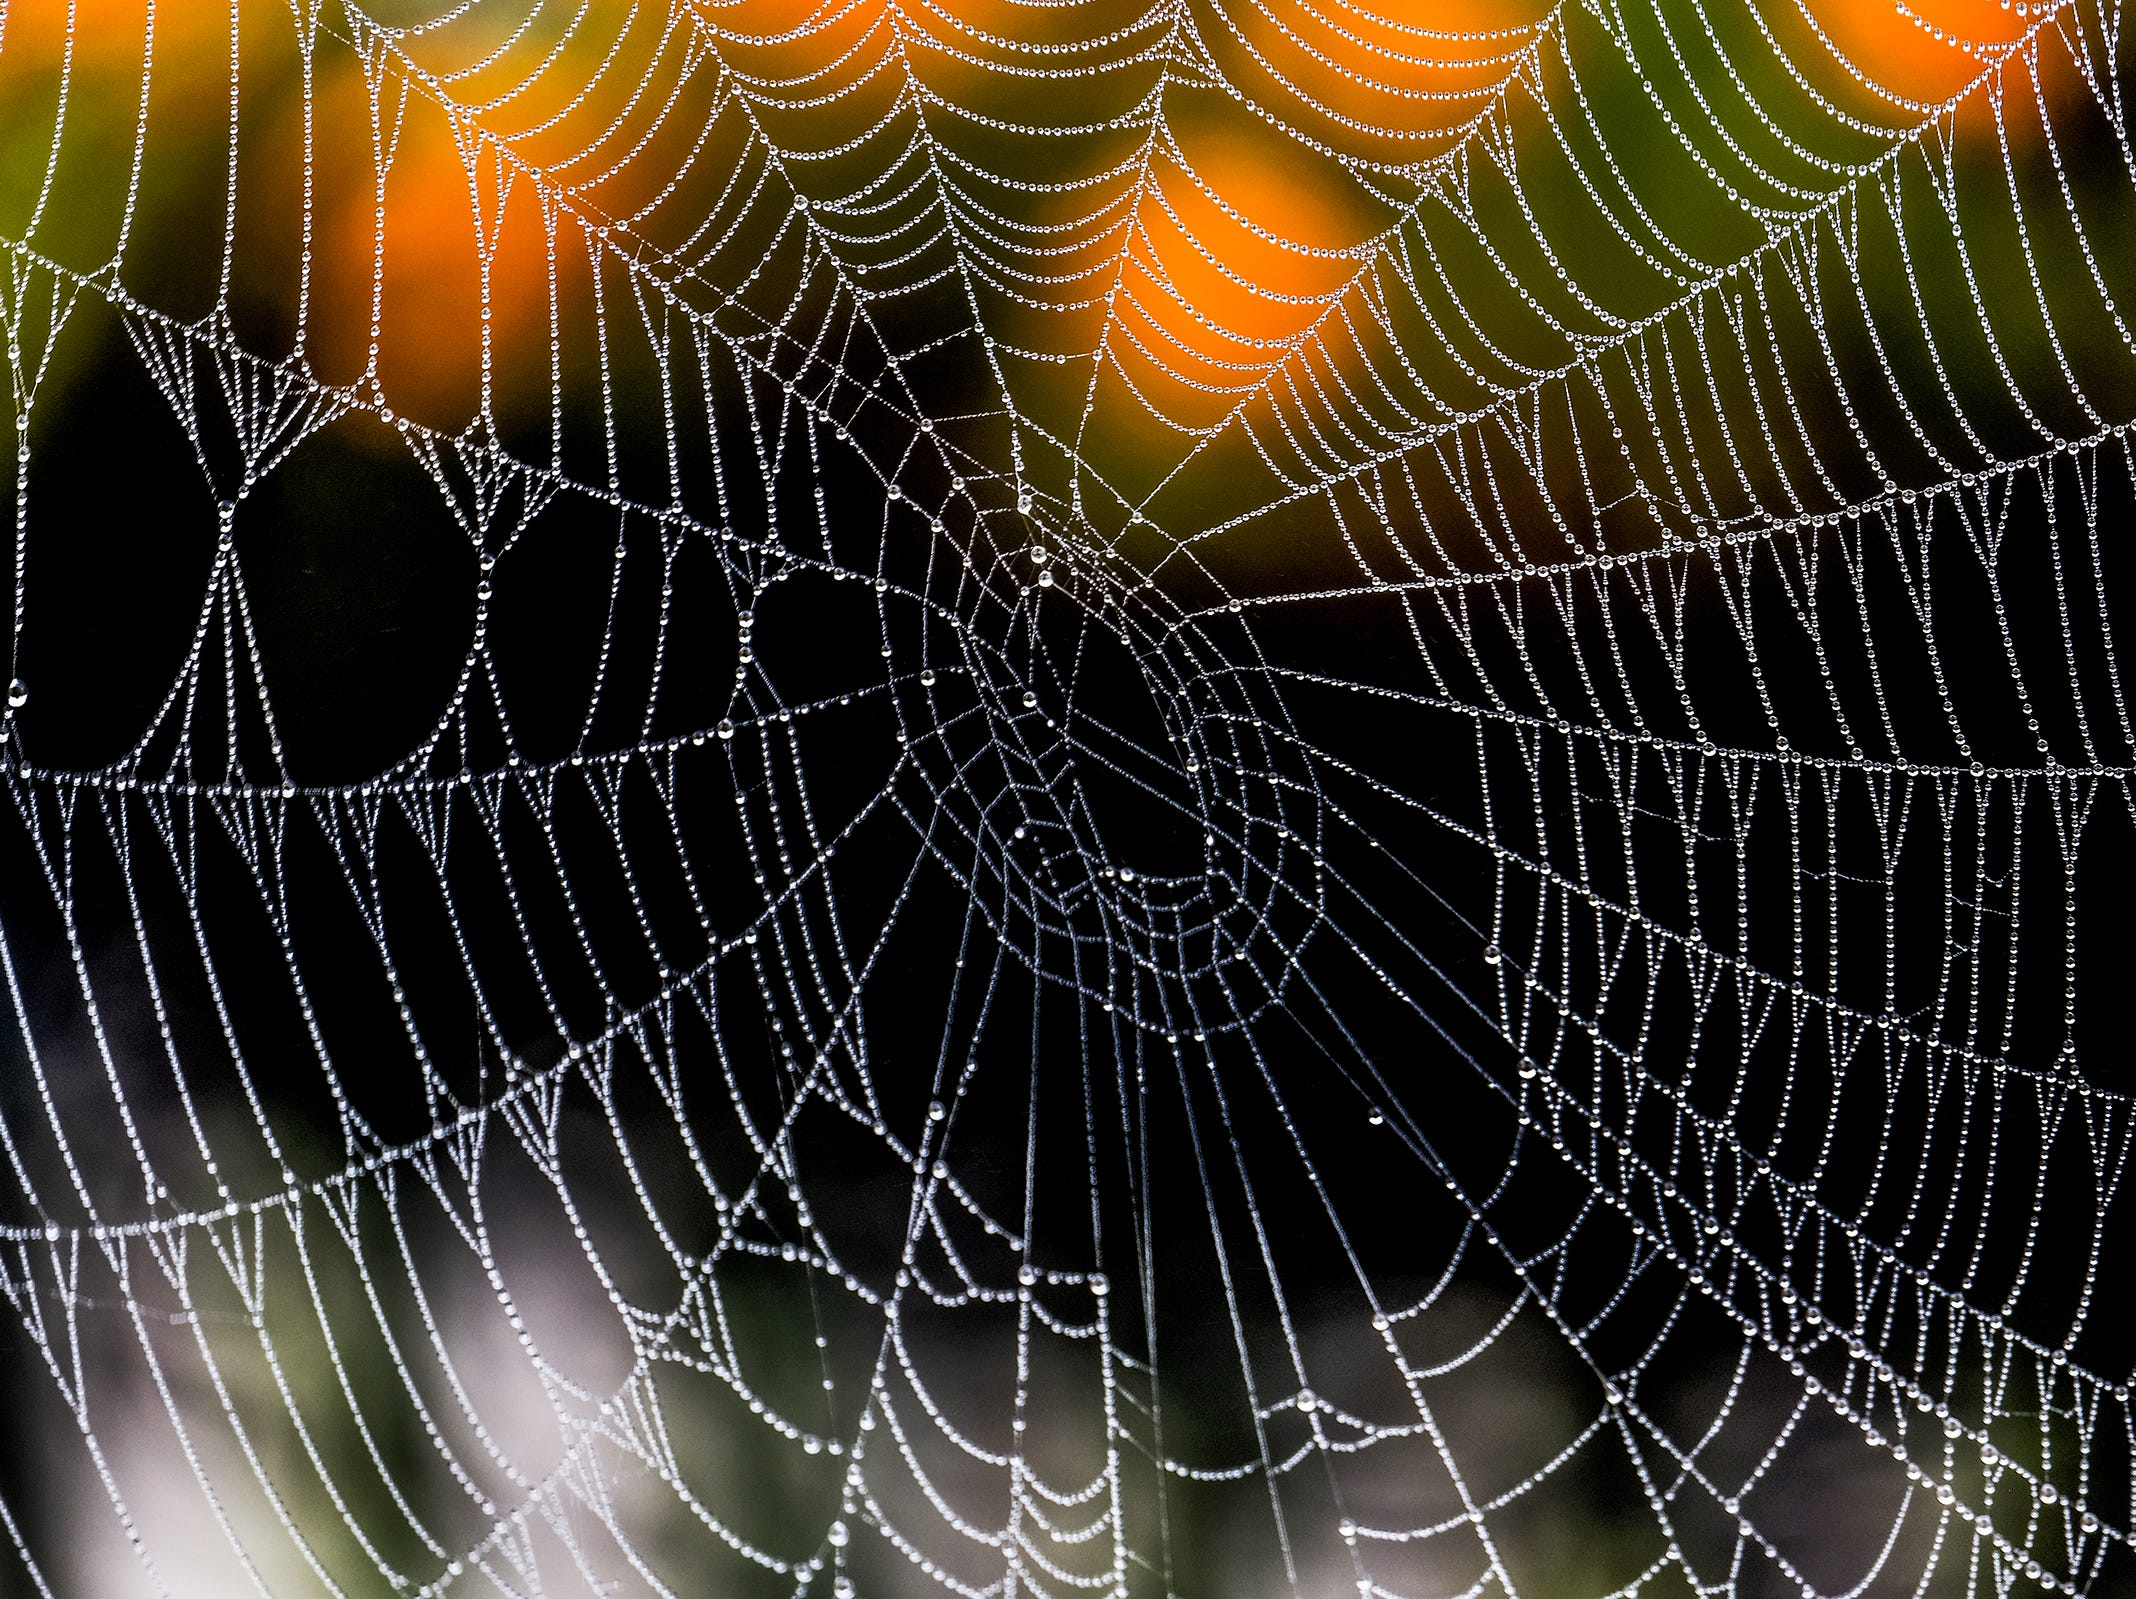 Dew drops cling to a spiderweb in the early morning.